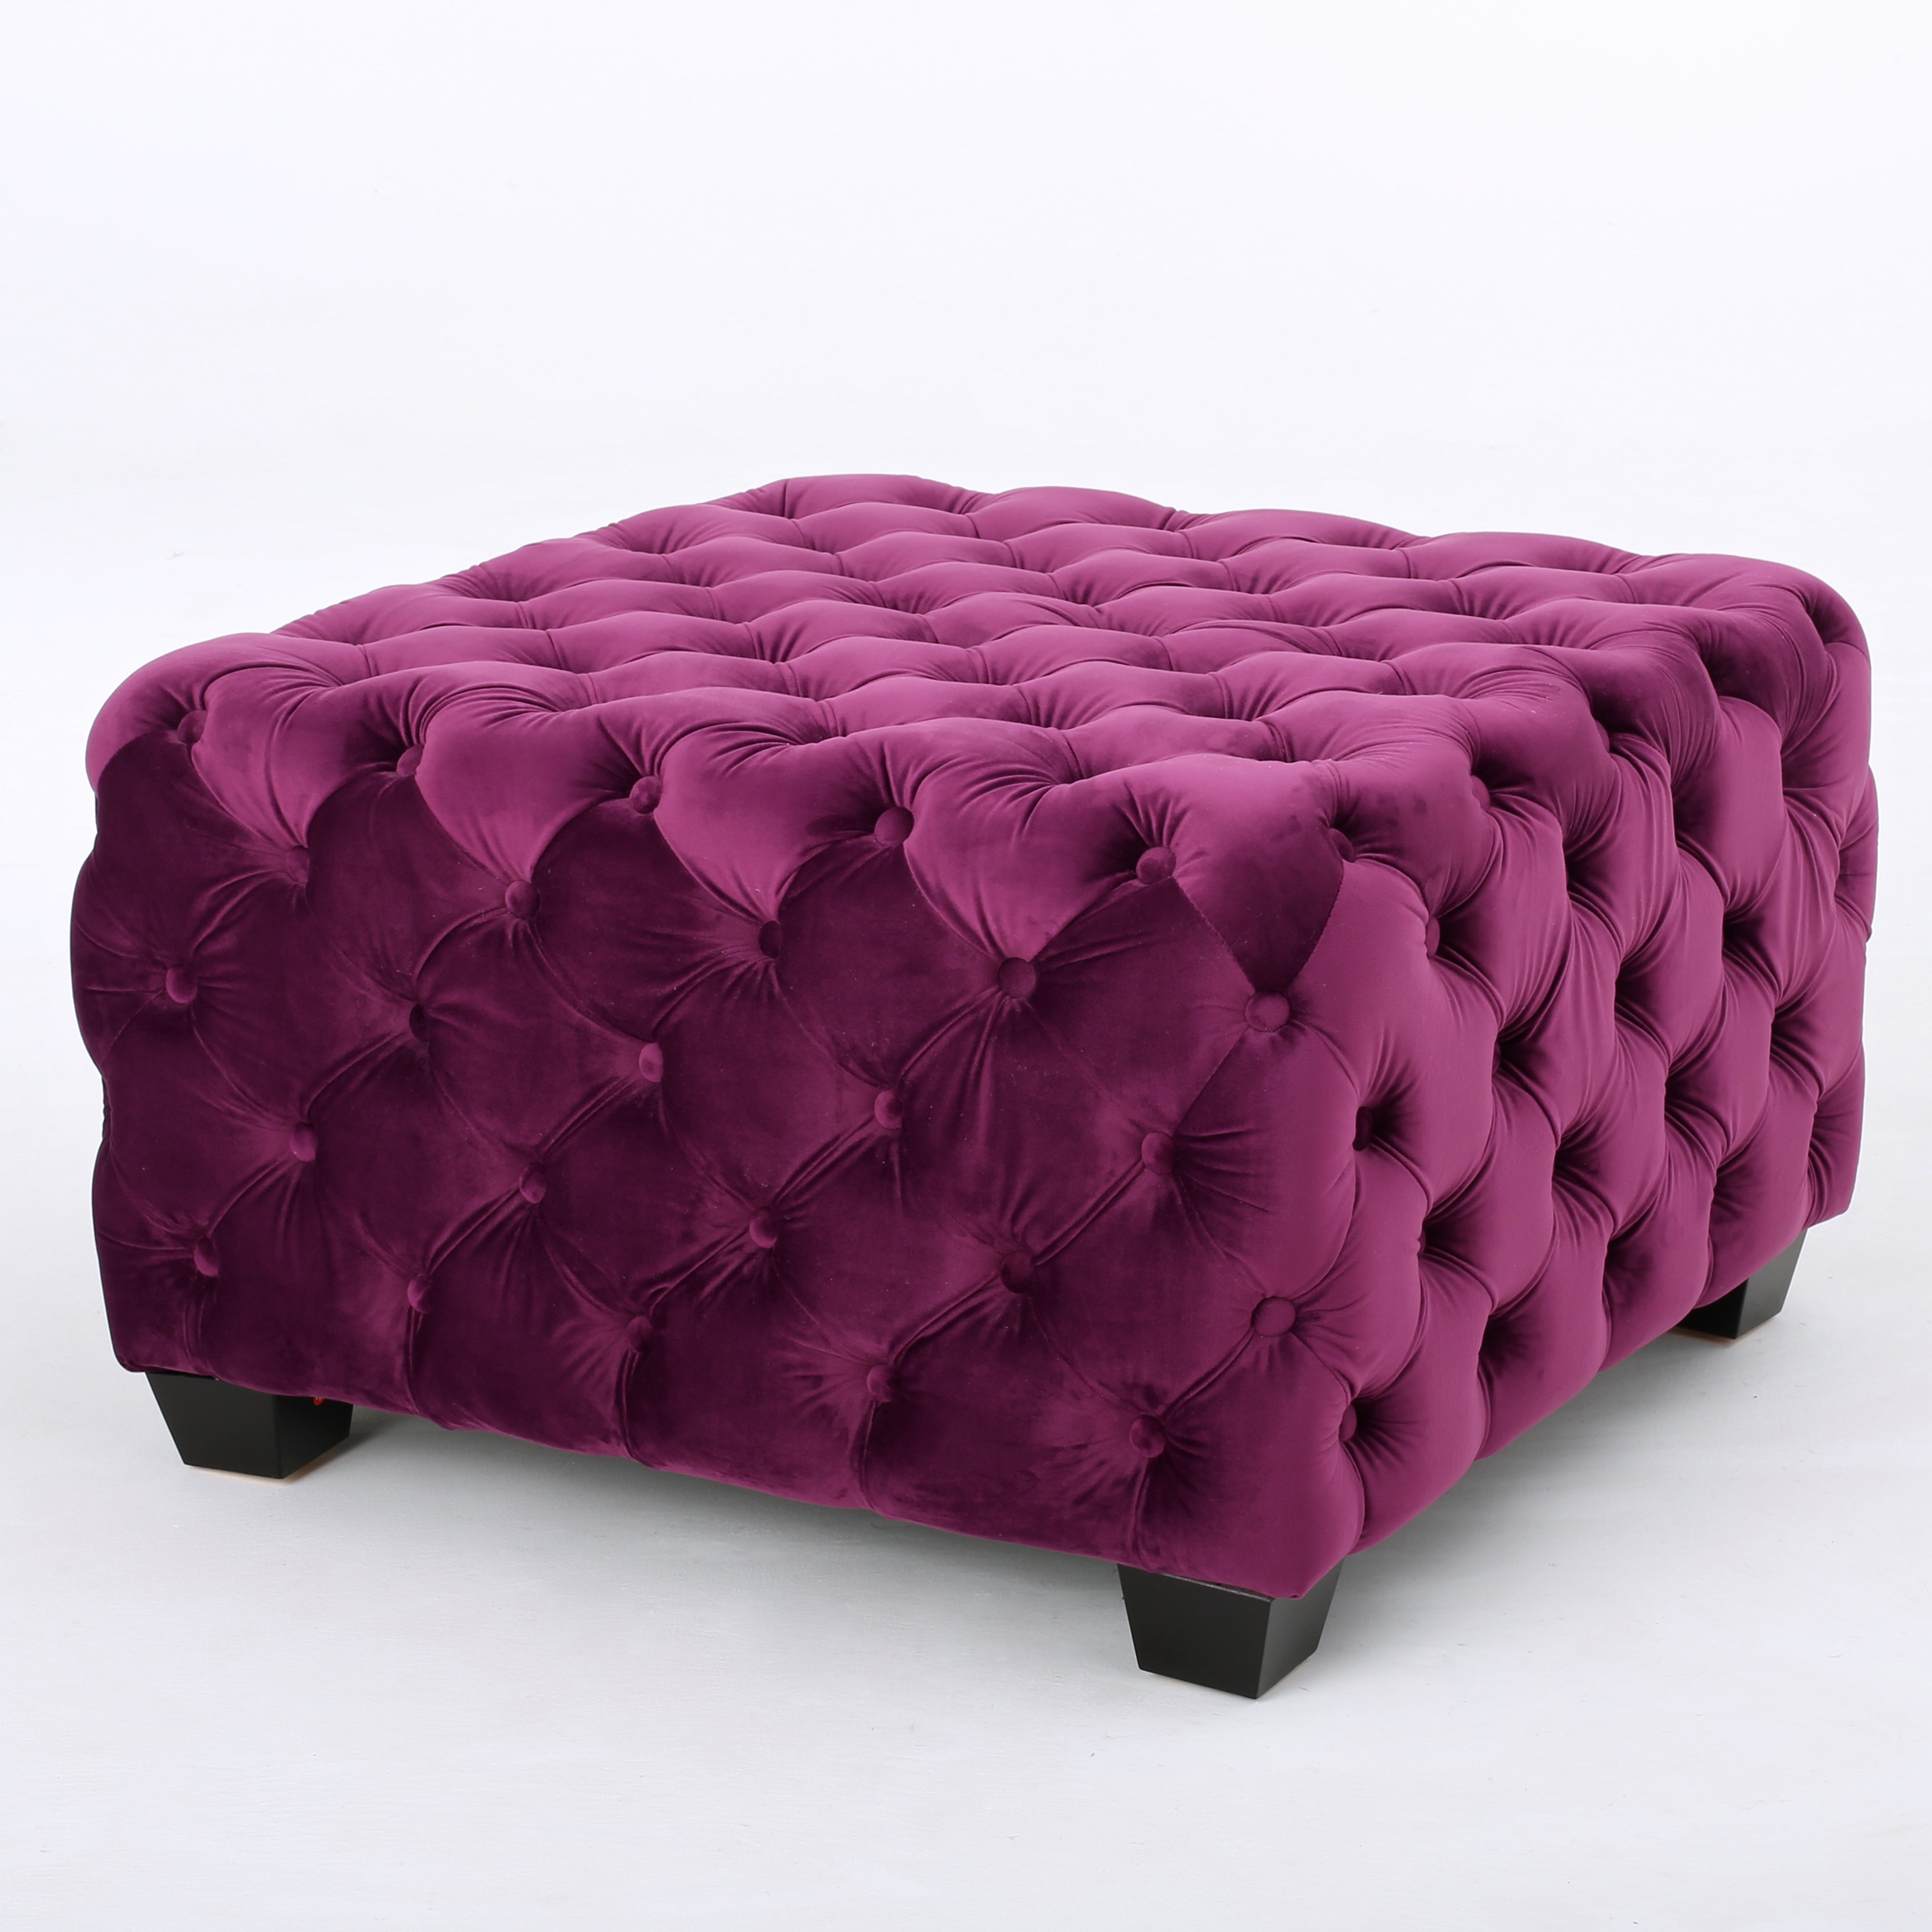 Provence Tufted Velvet Fabric Square Ottoman Bench, Fuchsia